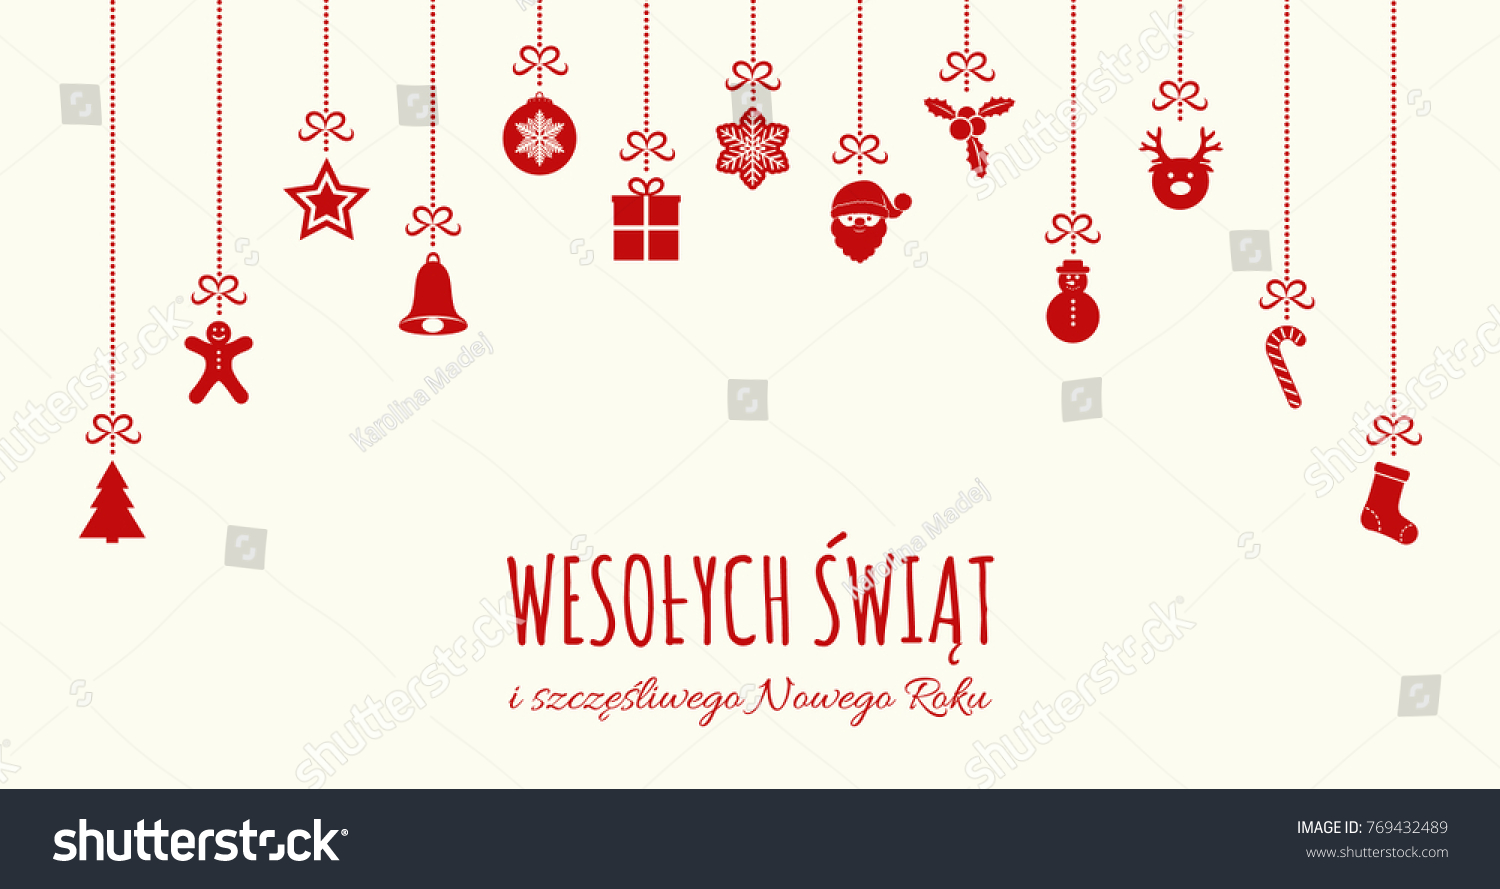 wesolych swiat merry christmas in polish concept of christmas card with decoration vector